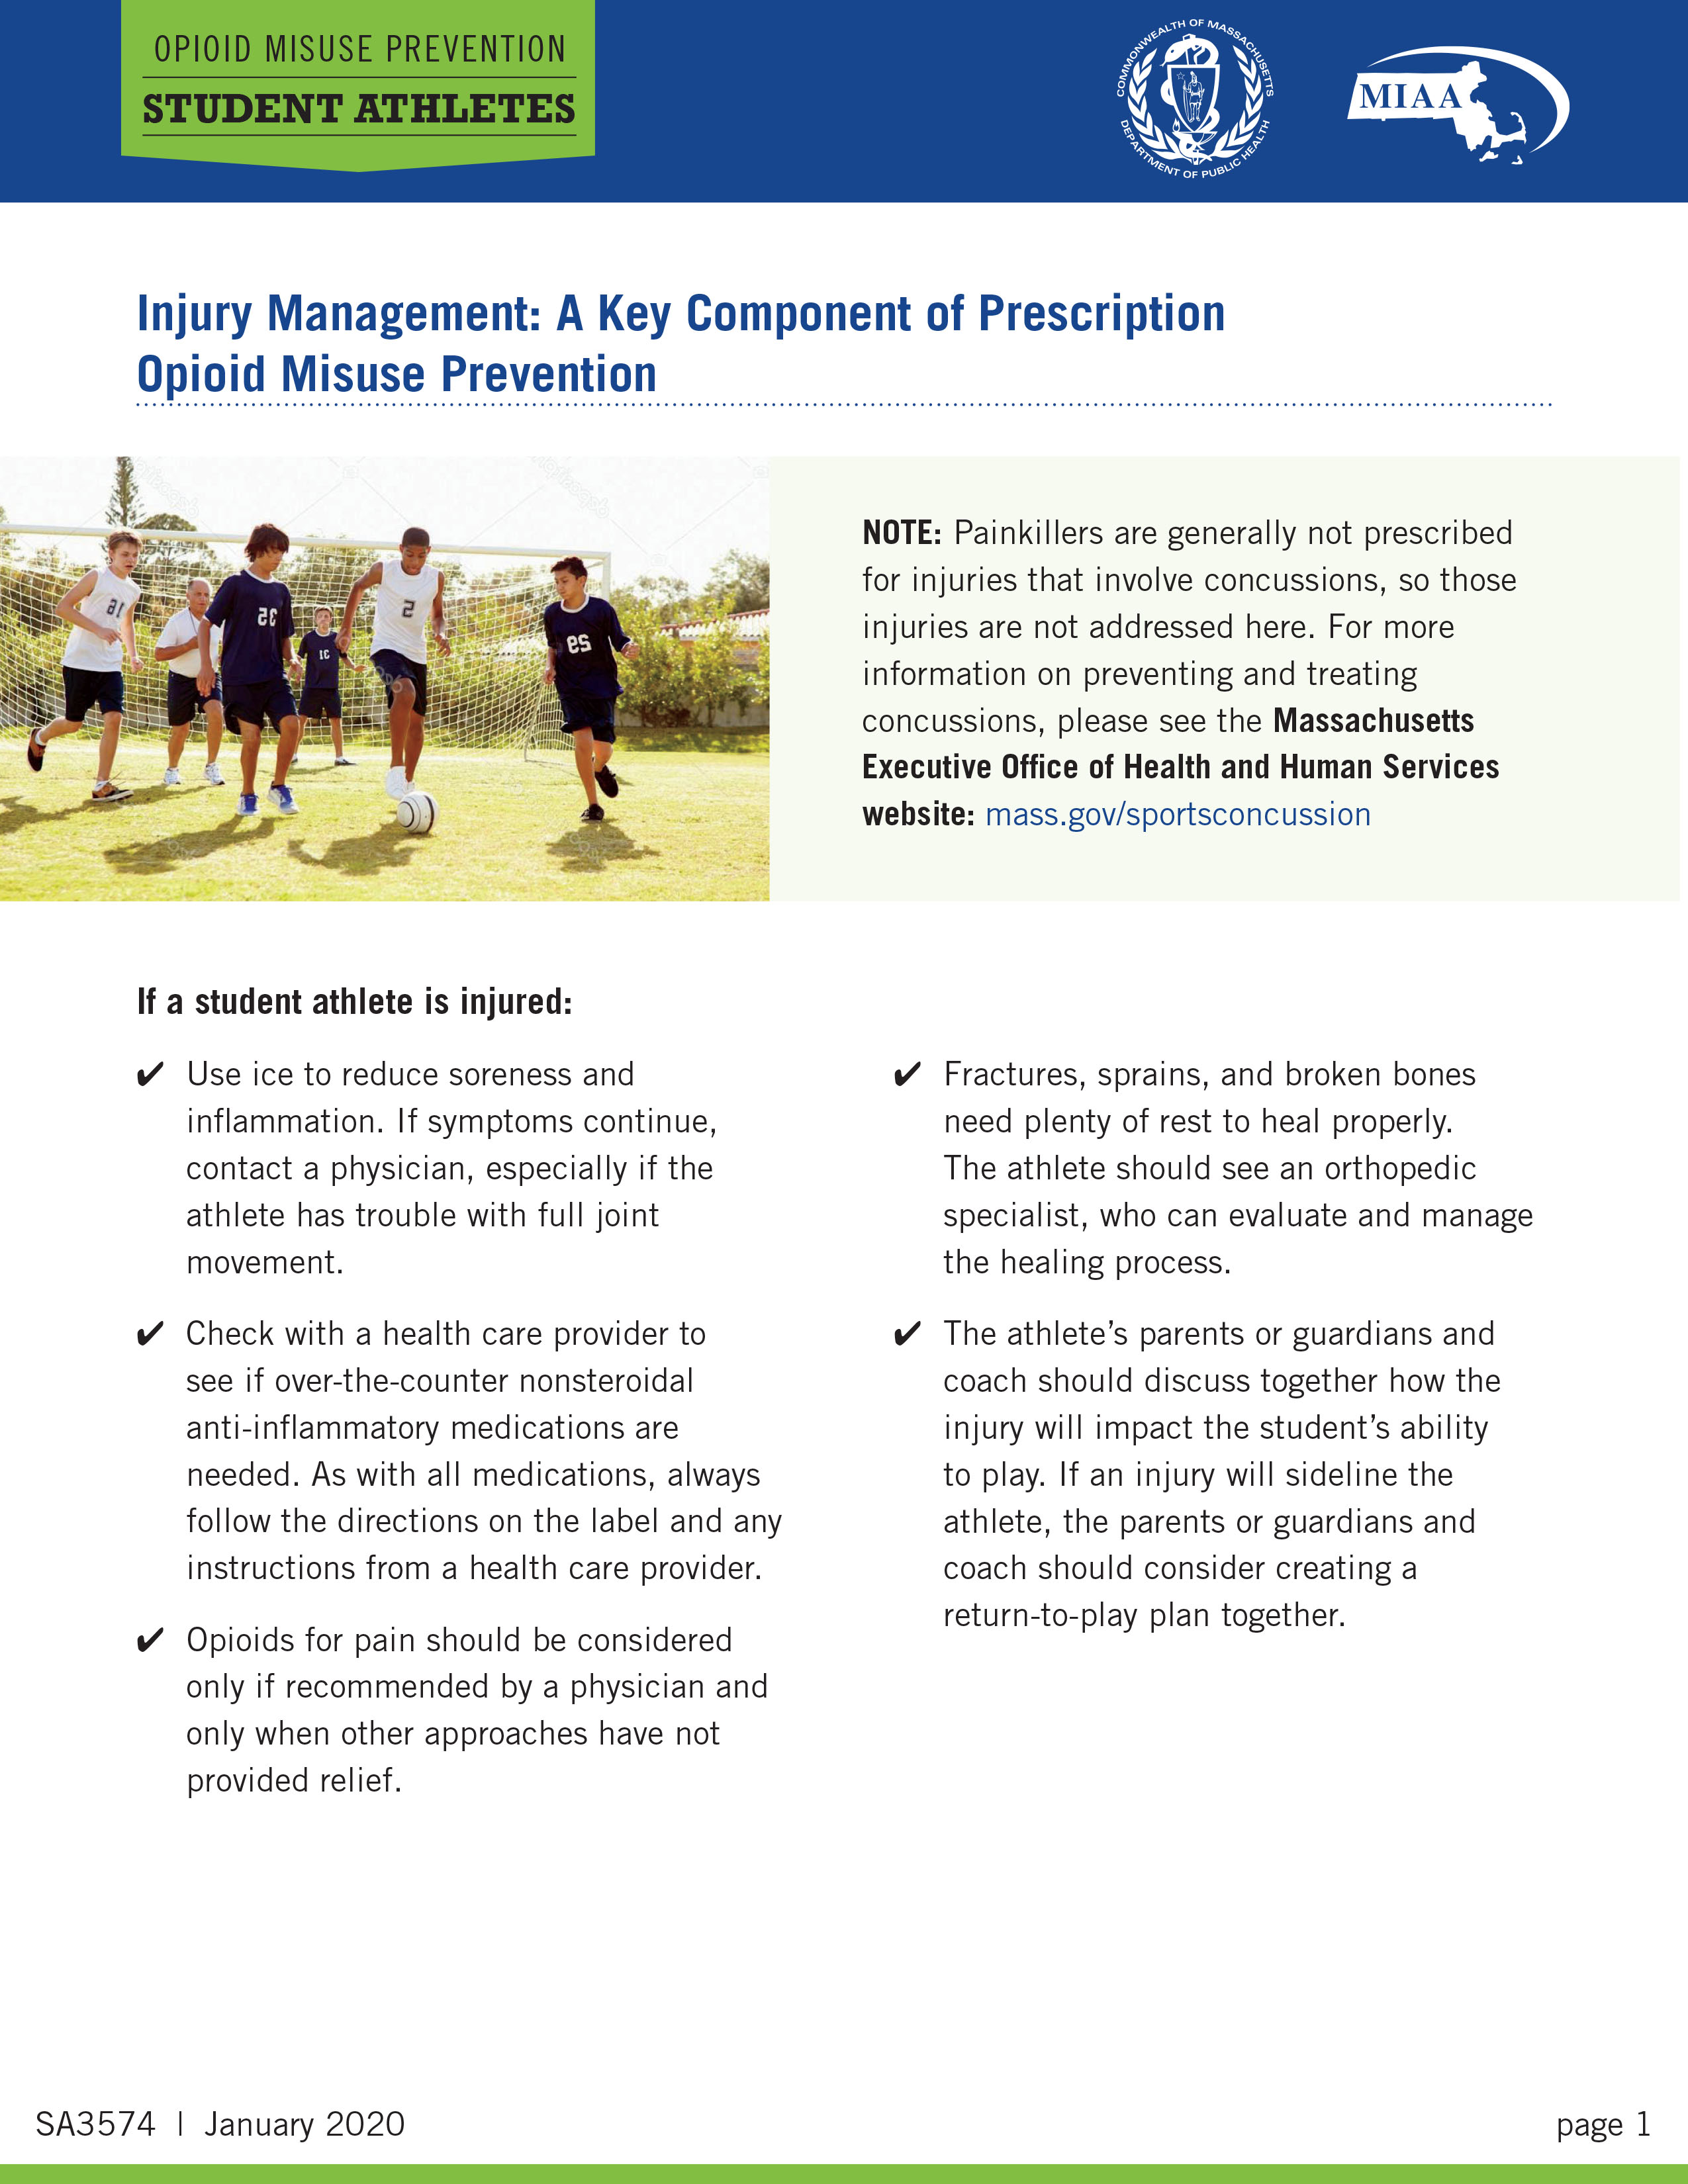 Injury Management A Key Component Of Prescription Opioid